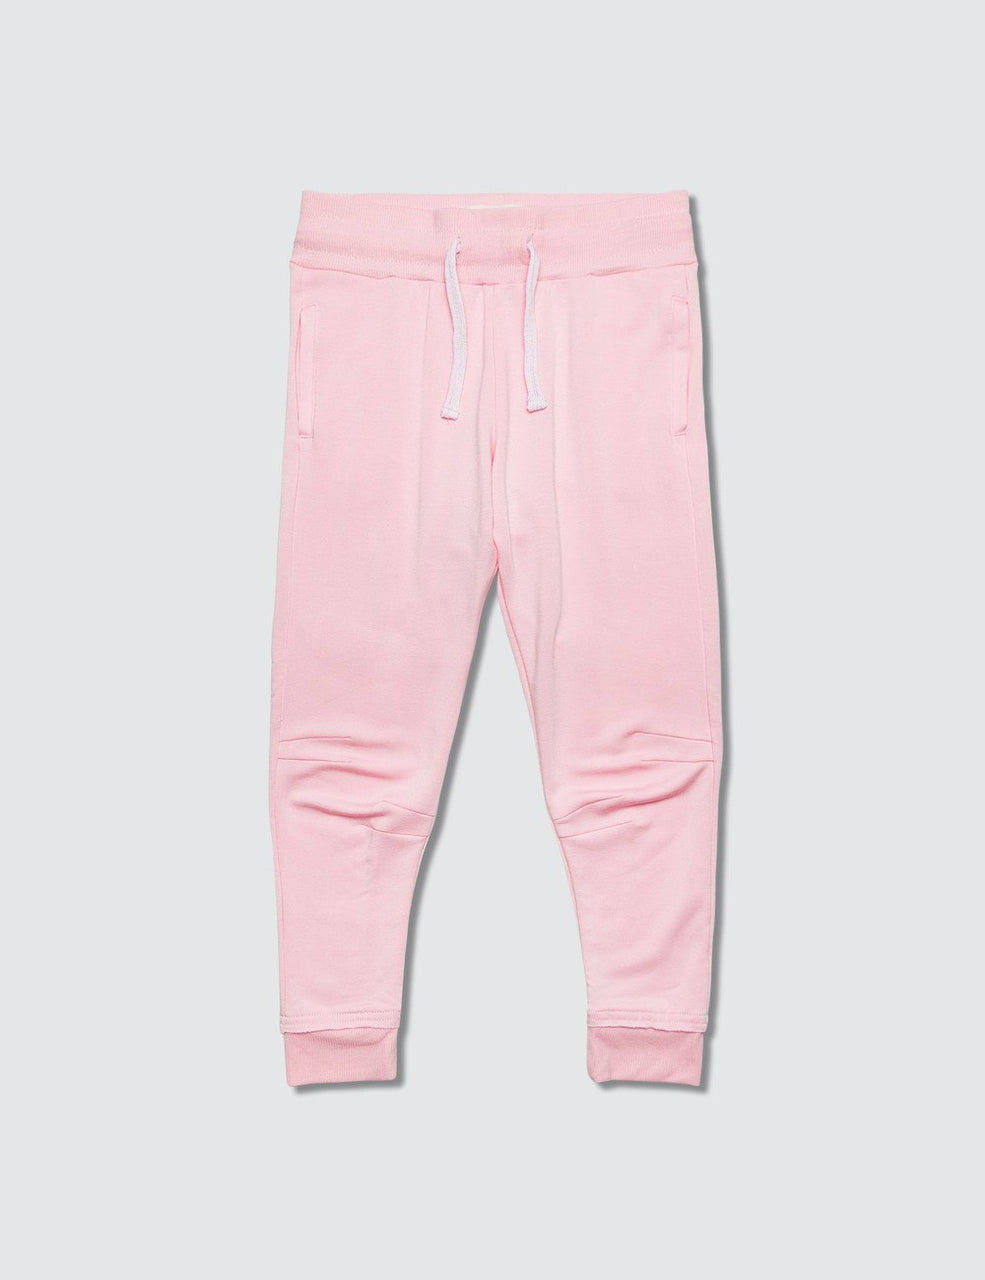 Kid's Clothing - Sweatpants - Exposed